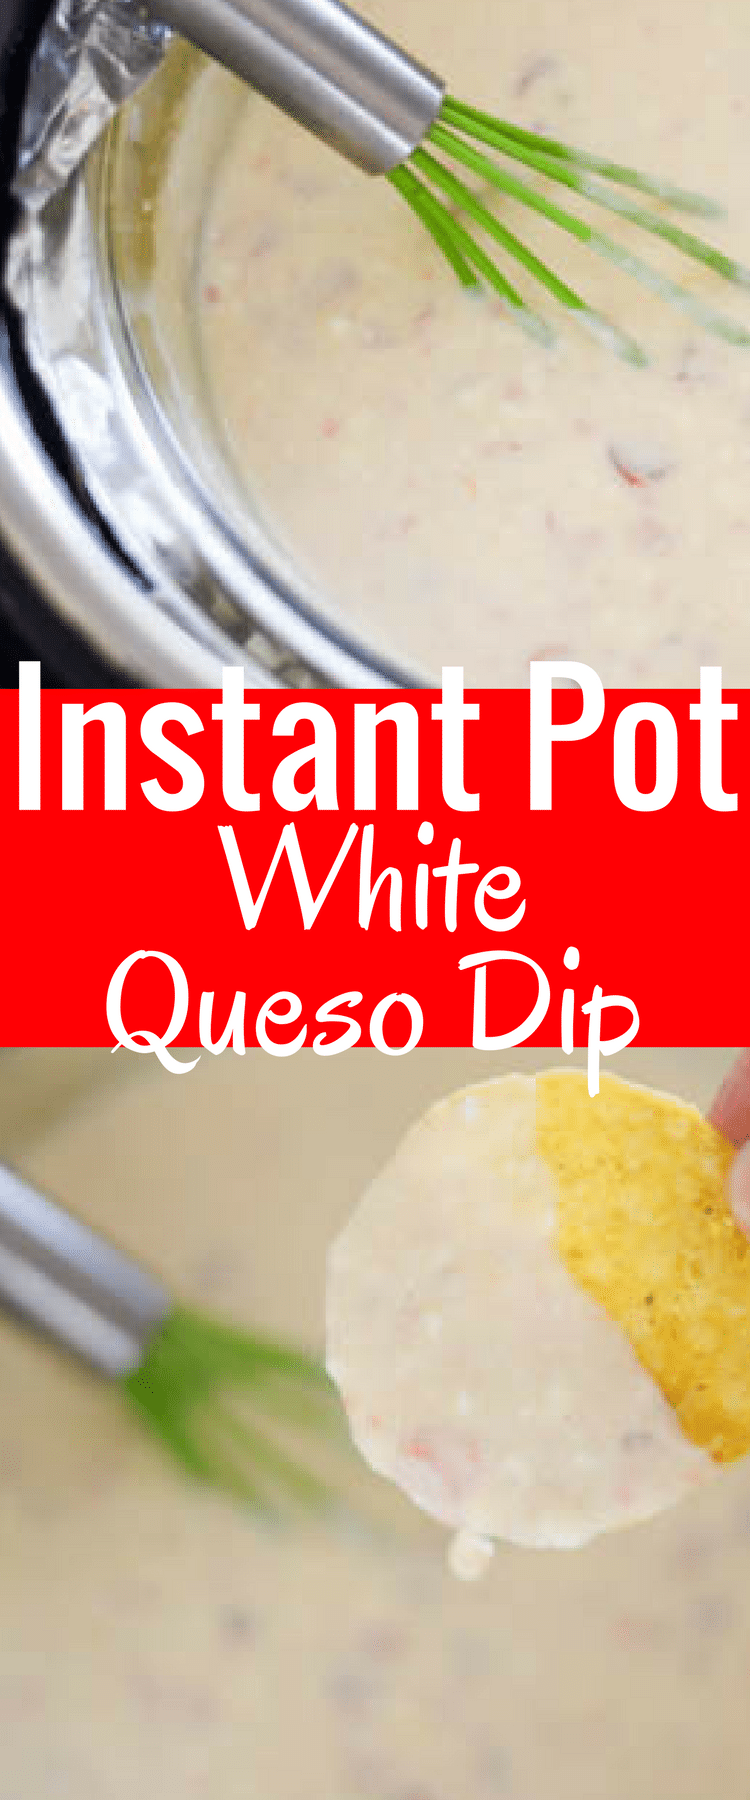 Instant Pot White Queso / Instant Pot Dip / Instant Pot Cheese Sauce / Instant Pot Recipes / Instant Pot / Instant Pot Recipe